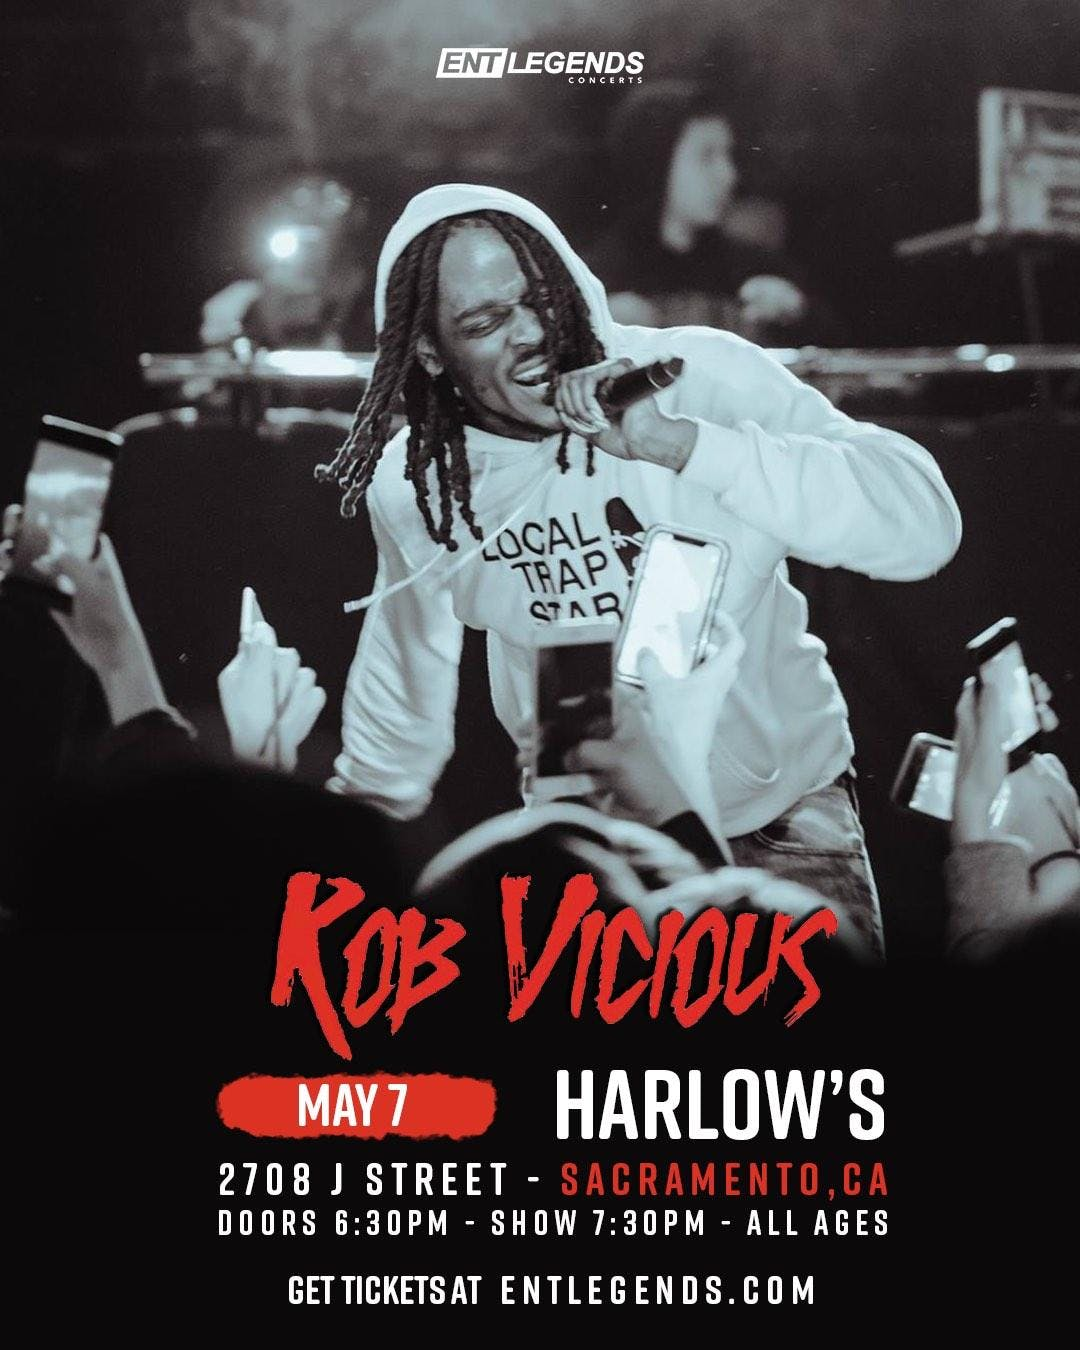 Rob Vicious (Shoreline Mafia)